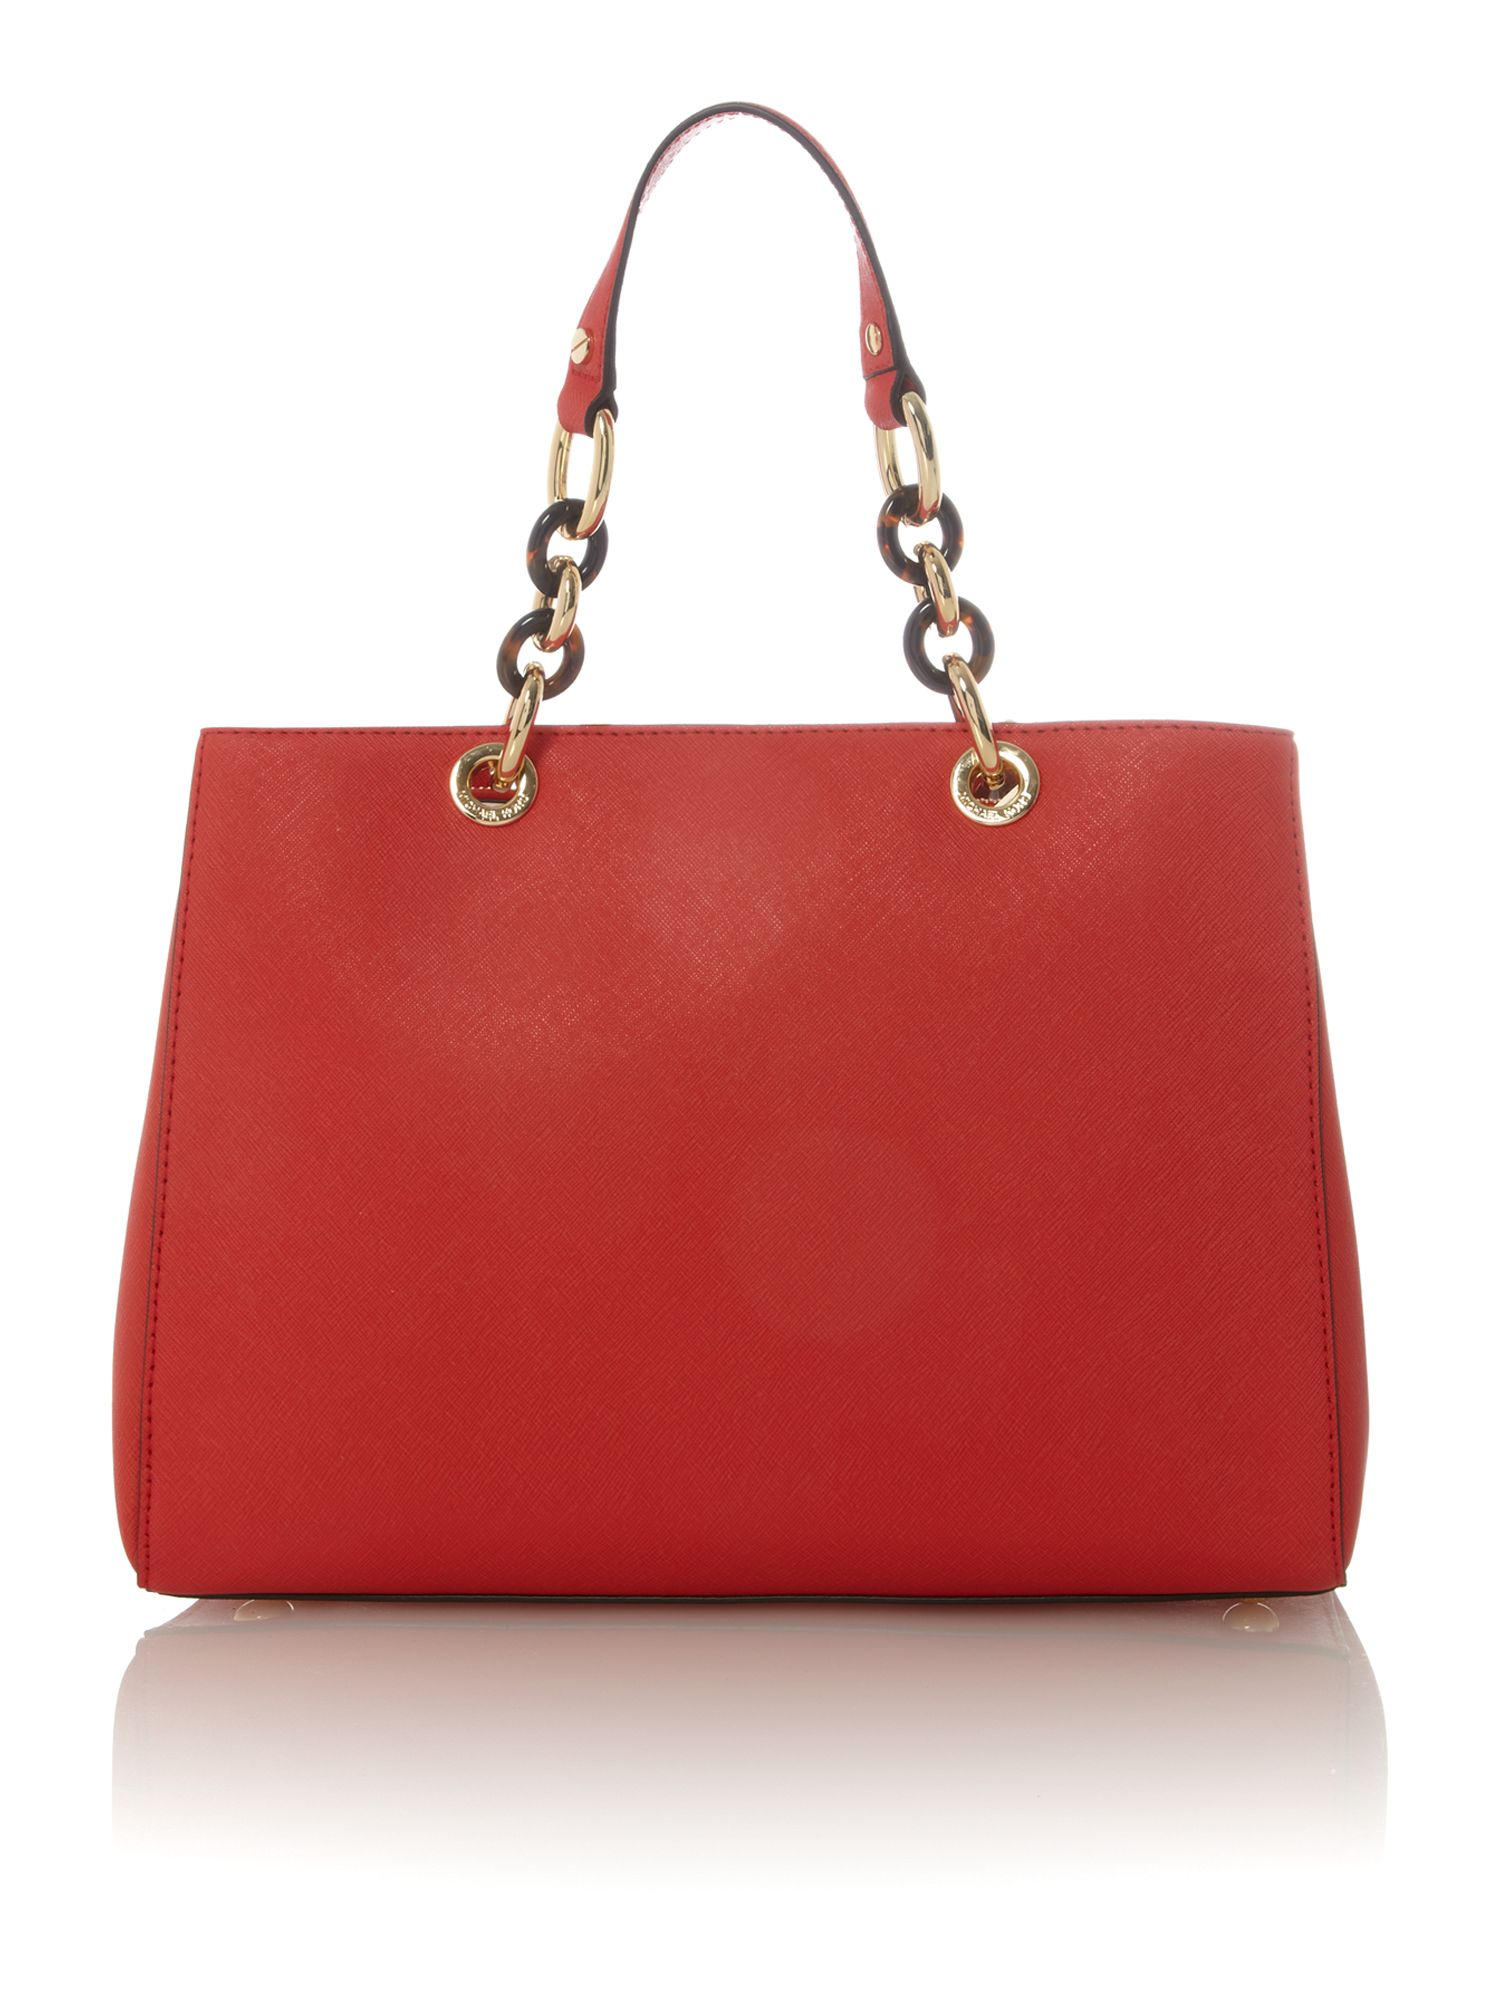 Cynthia red ew tote bag